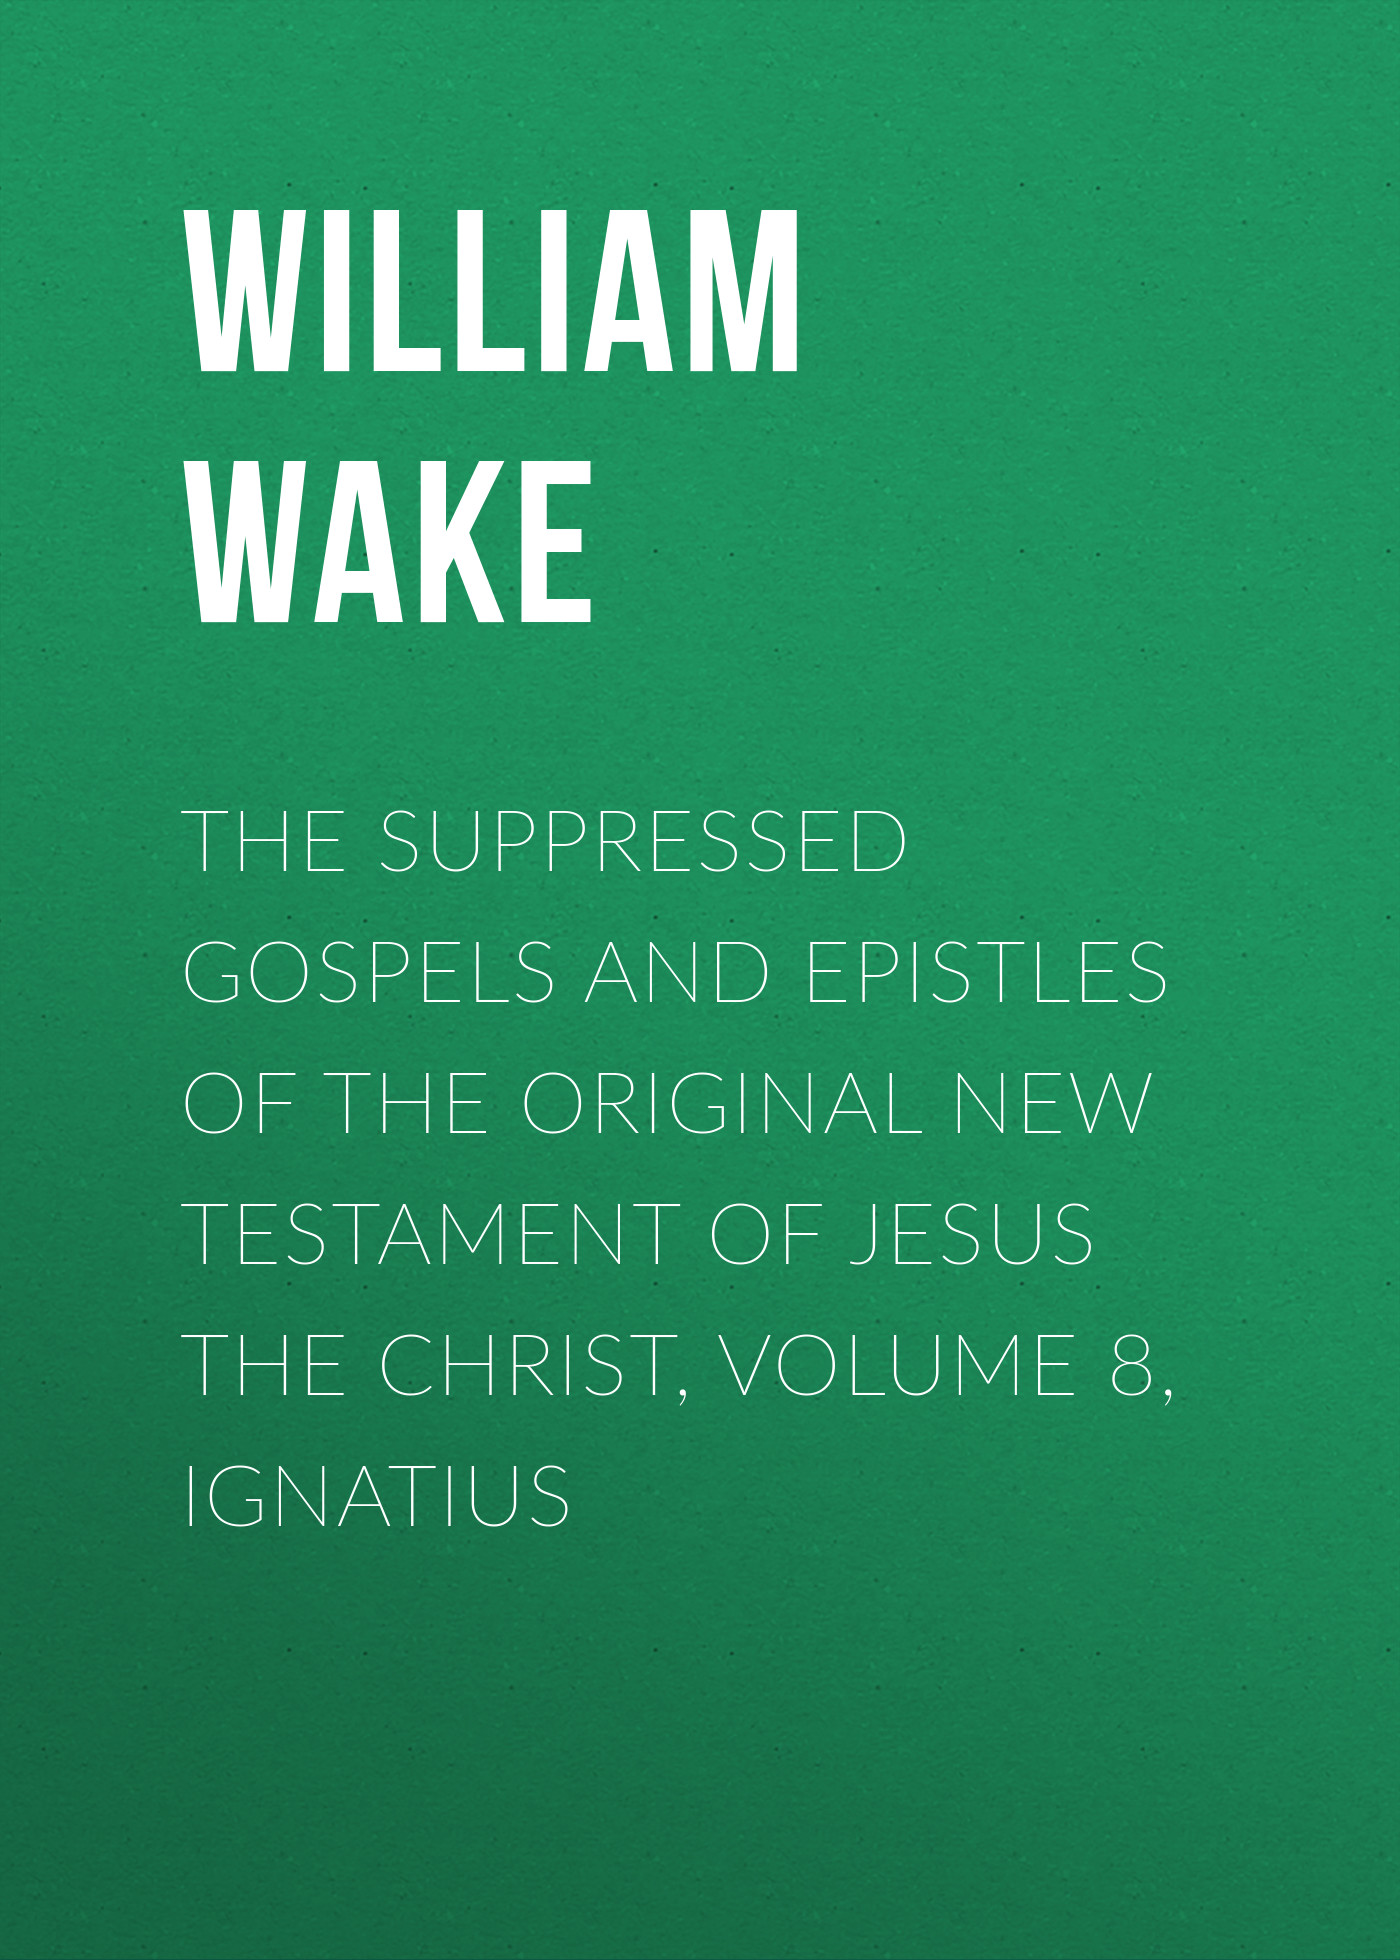 William Wake The suppressed Gospels and Epistles of the original New Testament of Jesus the Christ, Volume 8, Ignatius frey j the final testament